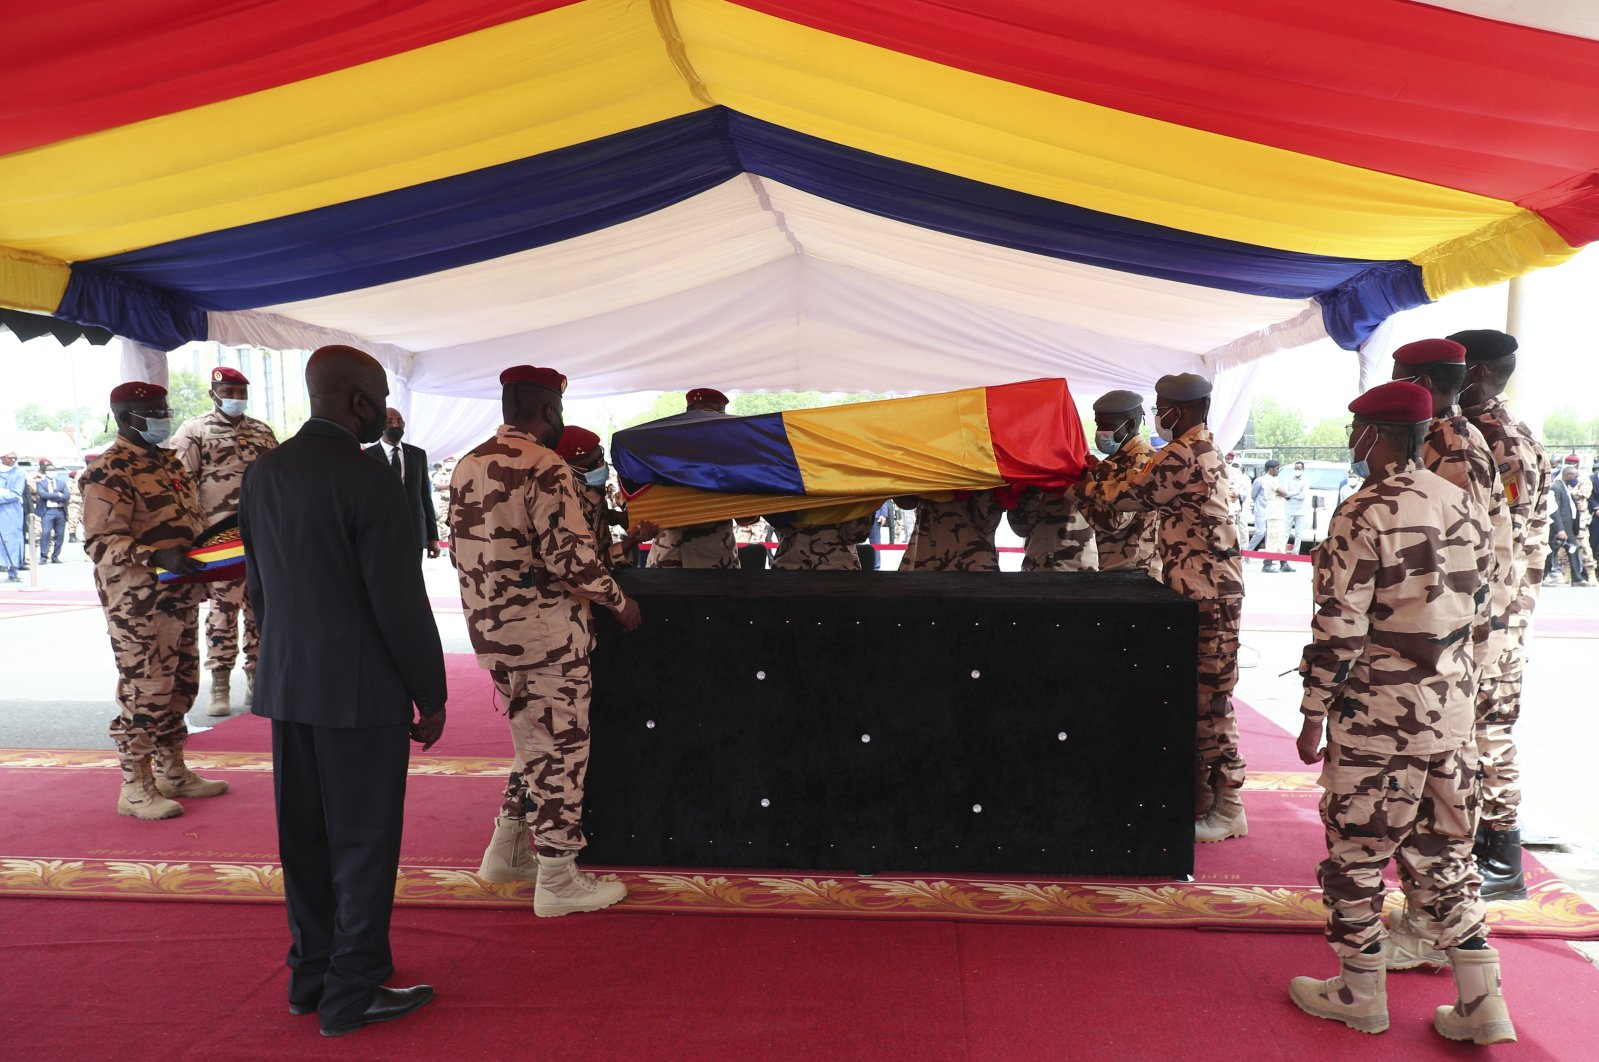 Chadian soldiers carry the coffin of late Chadian President Idriss Deby Itno during the state funeral in N'Djamena, Chad, April 23, 2021. (AP Photo)